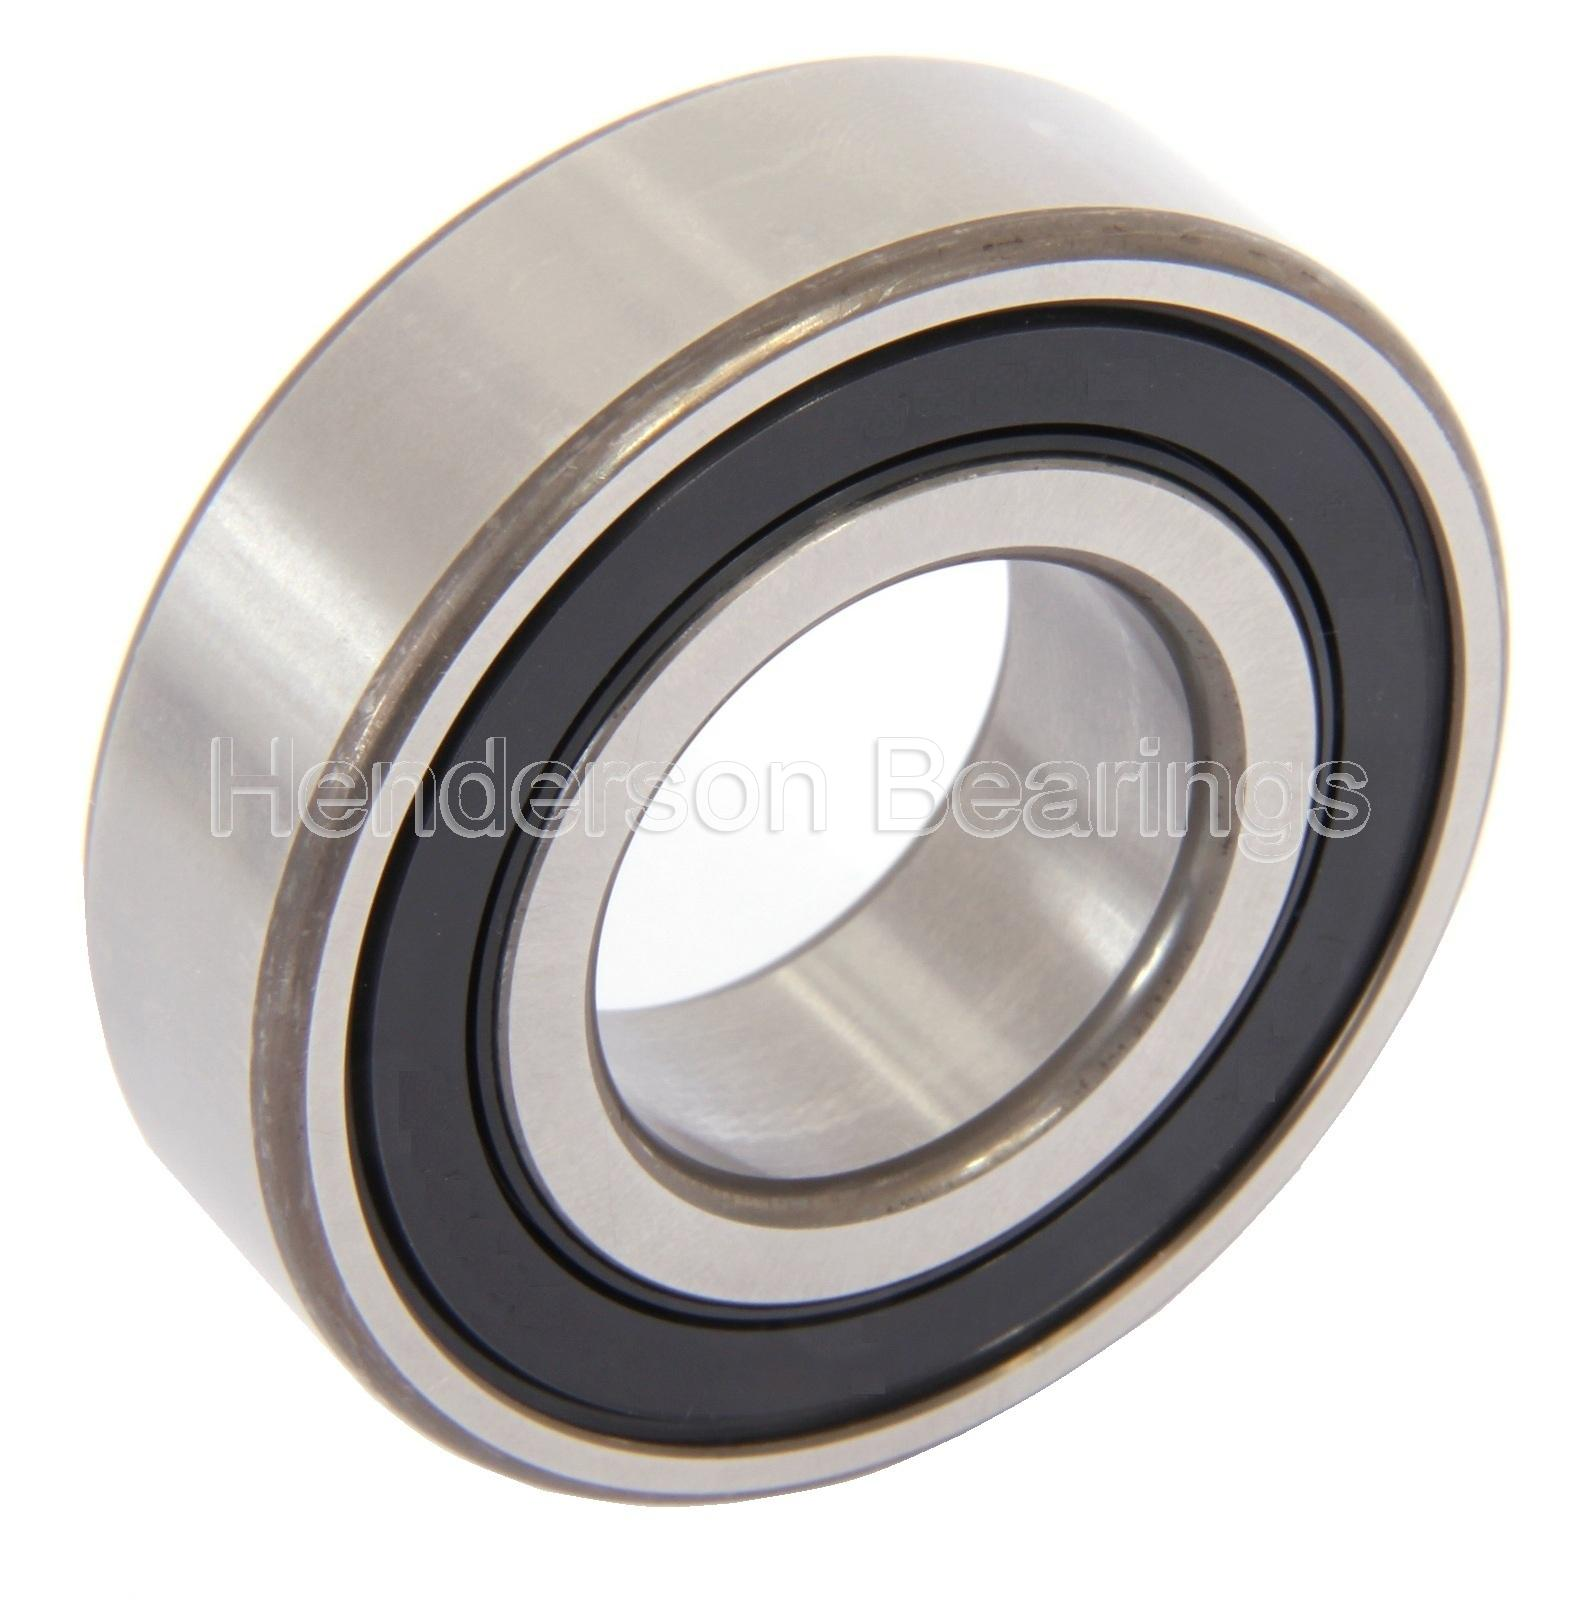 Sealed Bearing Assembly : Pack of quality series sealed ball bearing